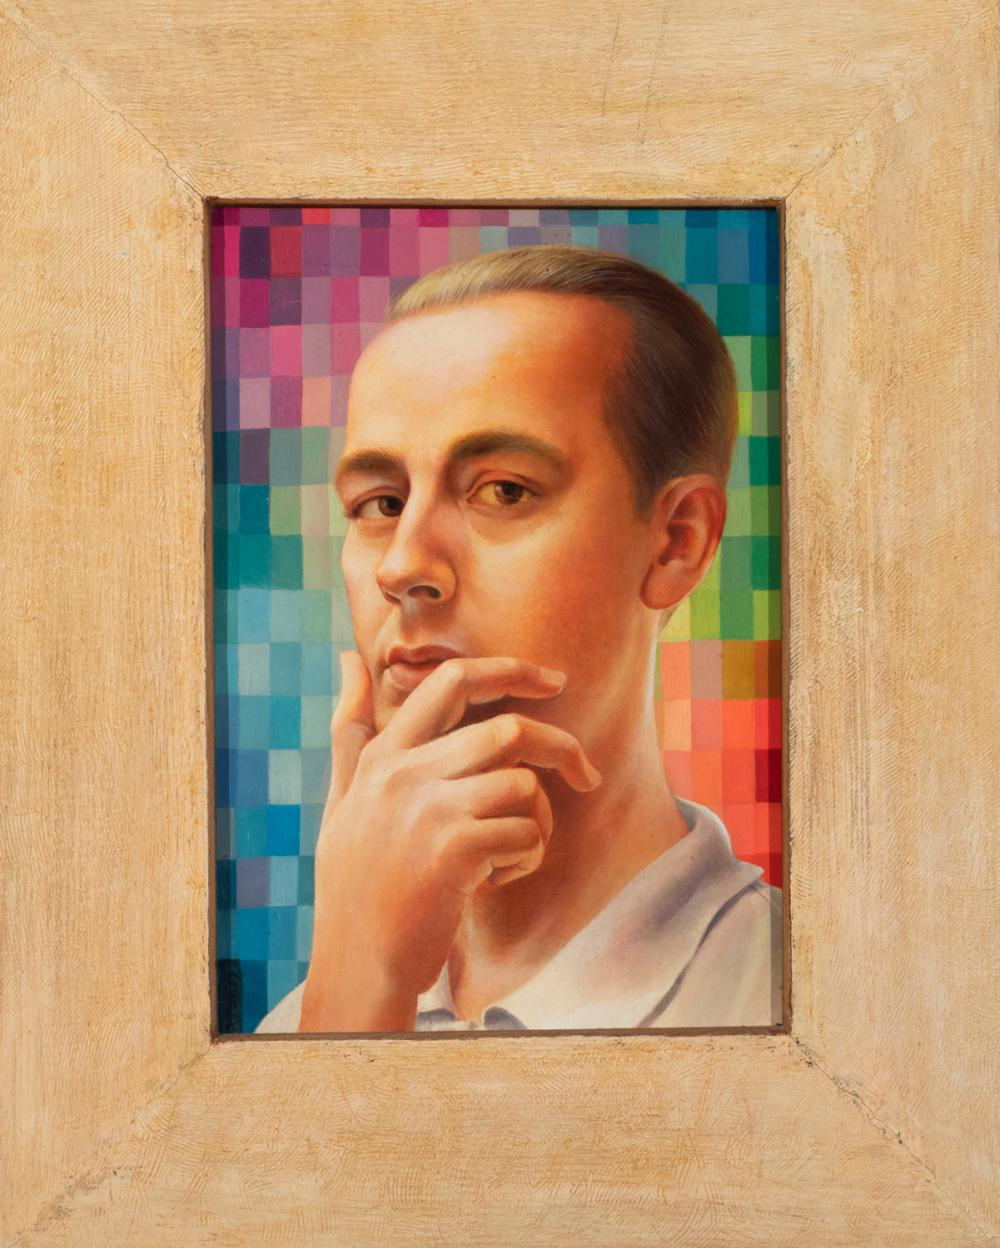 Hal Poth, American (1924-, Self-Portrait, 1957, oil on panel, 14 1/4 x 10 inches